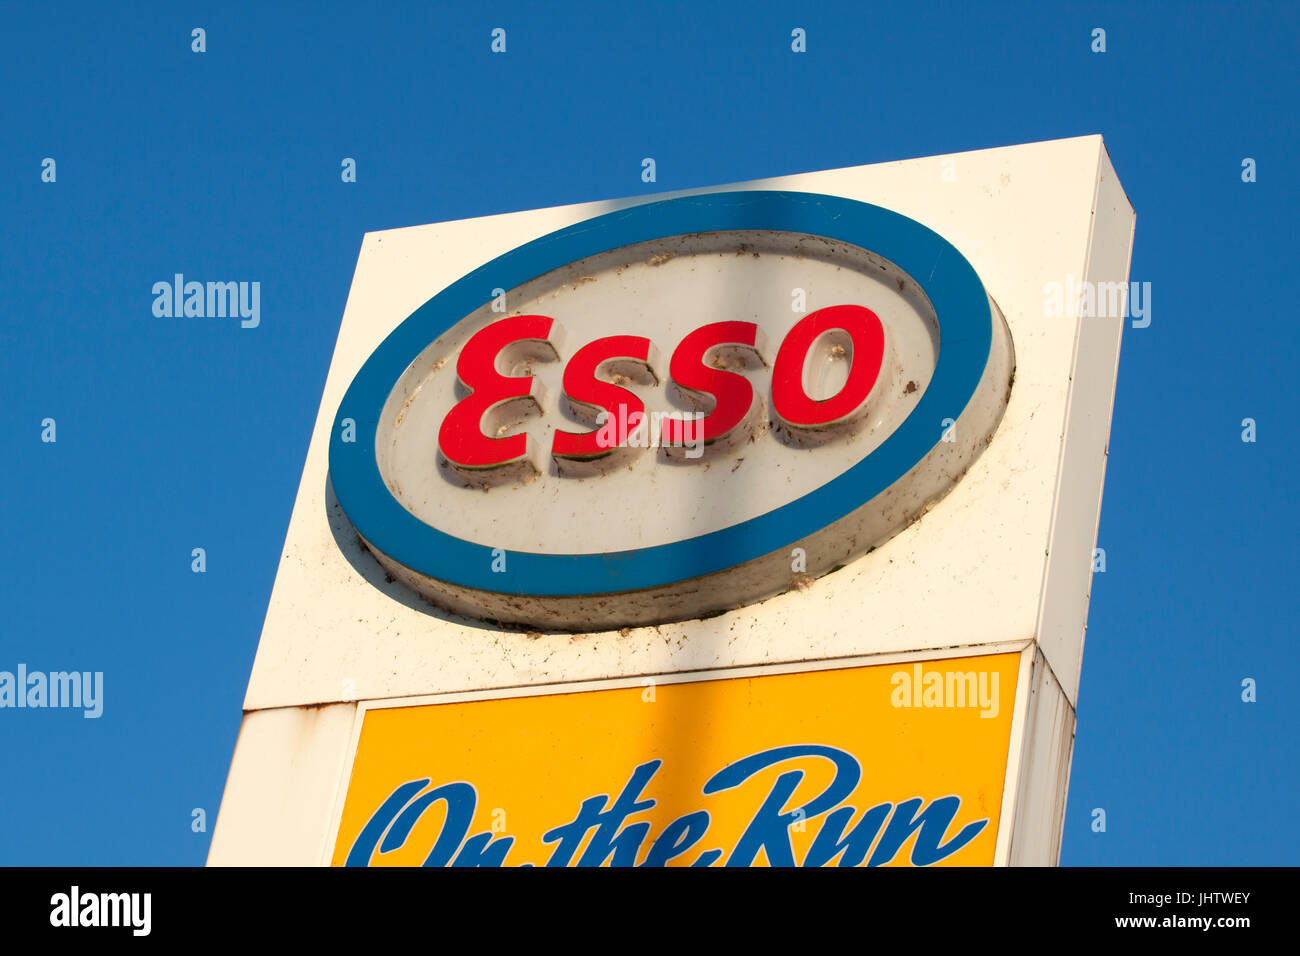 White red and blue advertising sign of  the esso with a blue sky in the background - Stock Image